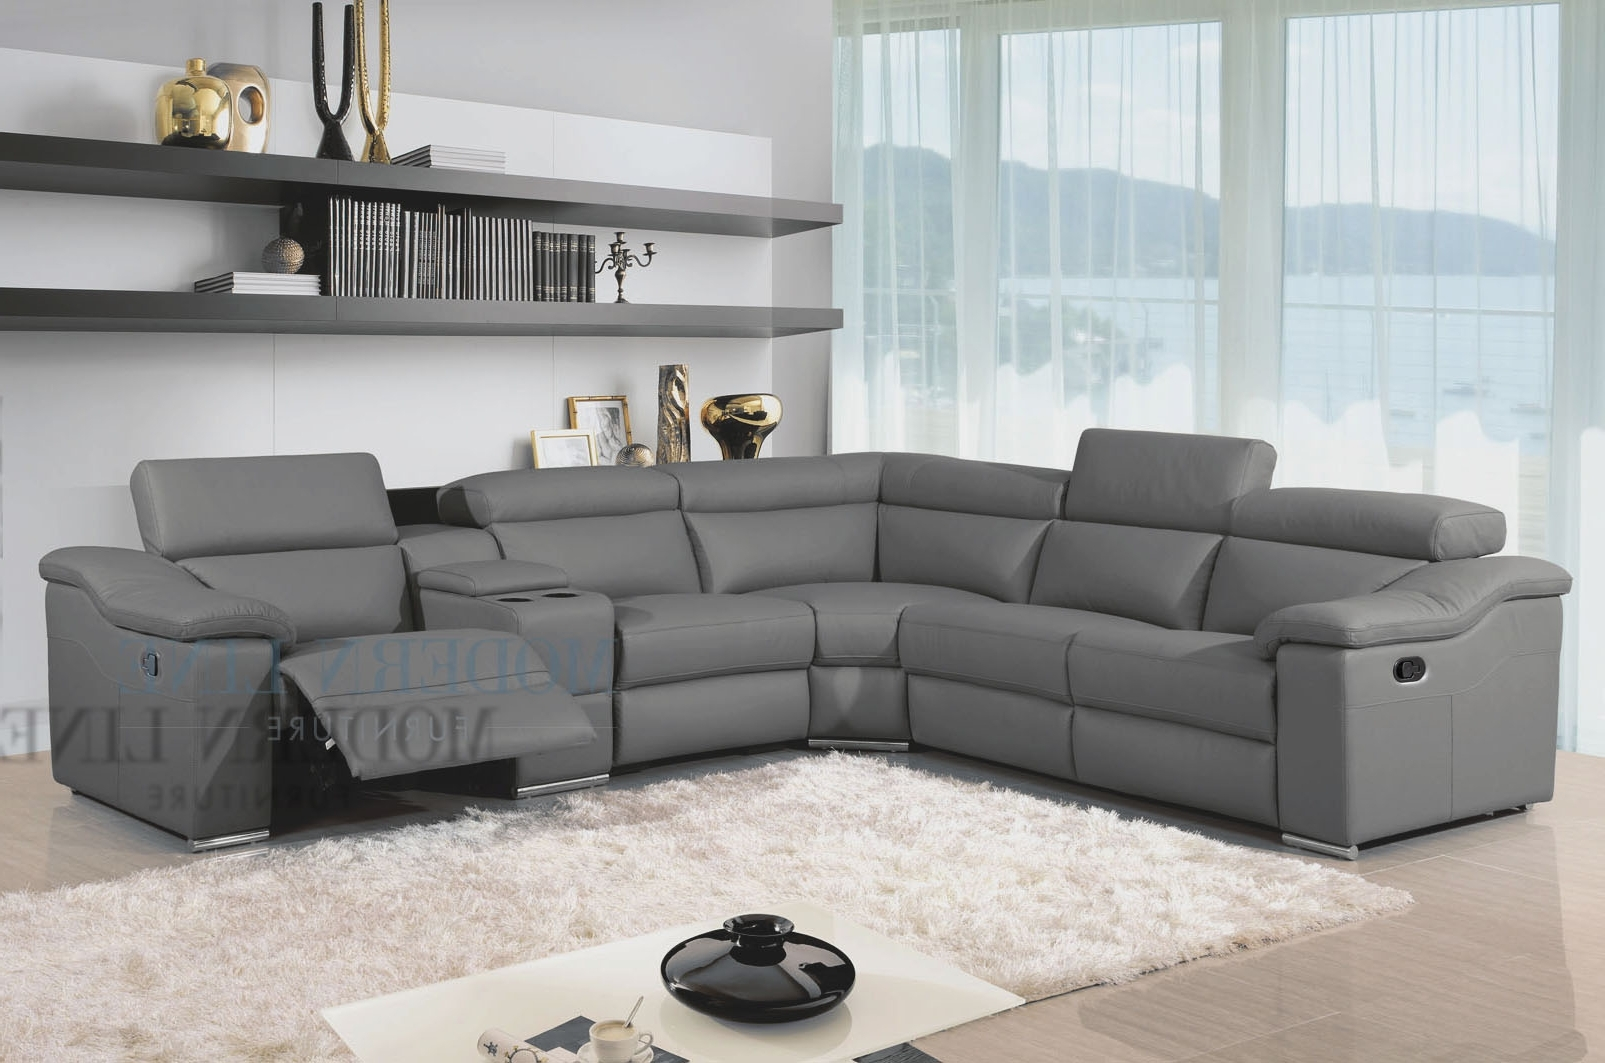 Modern Reclining Sectional Sofas – Cleanupflorida Throughout Most Up To Date Vancouver Bc Sectional Sofas (View 5 of 20)